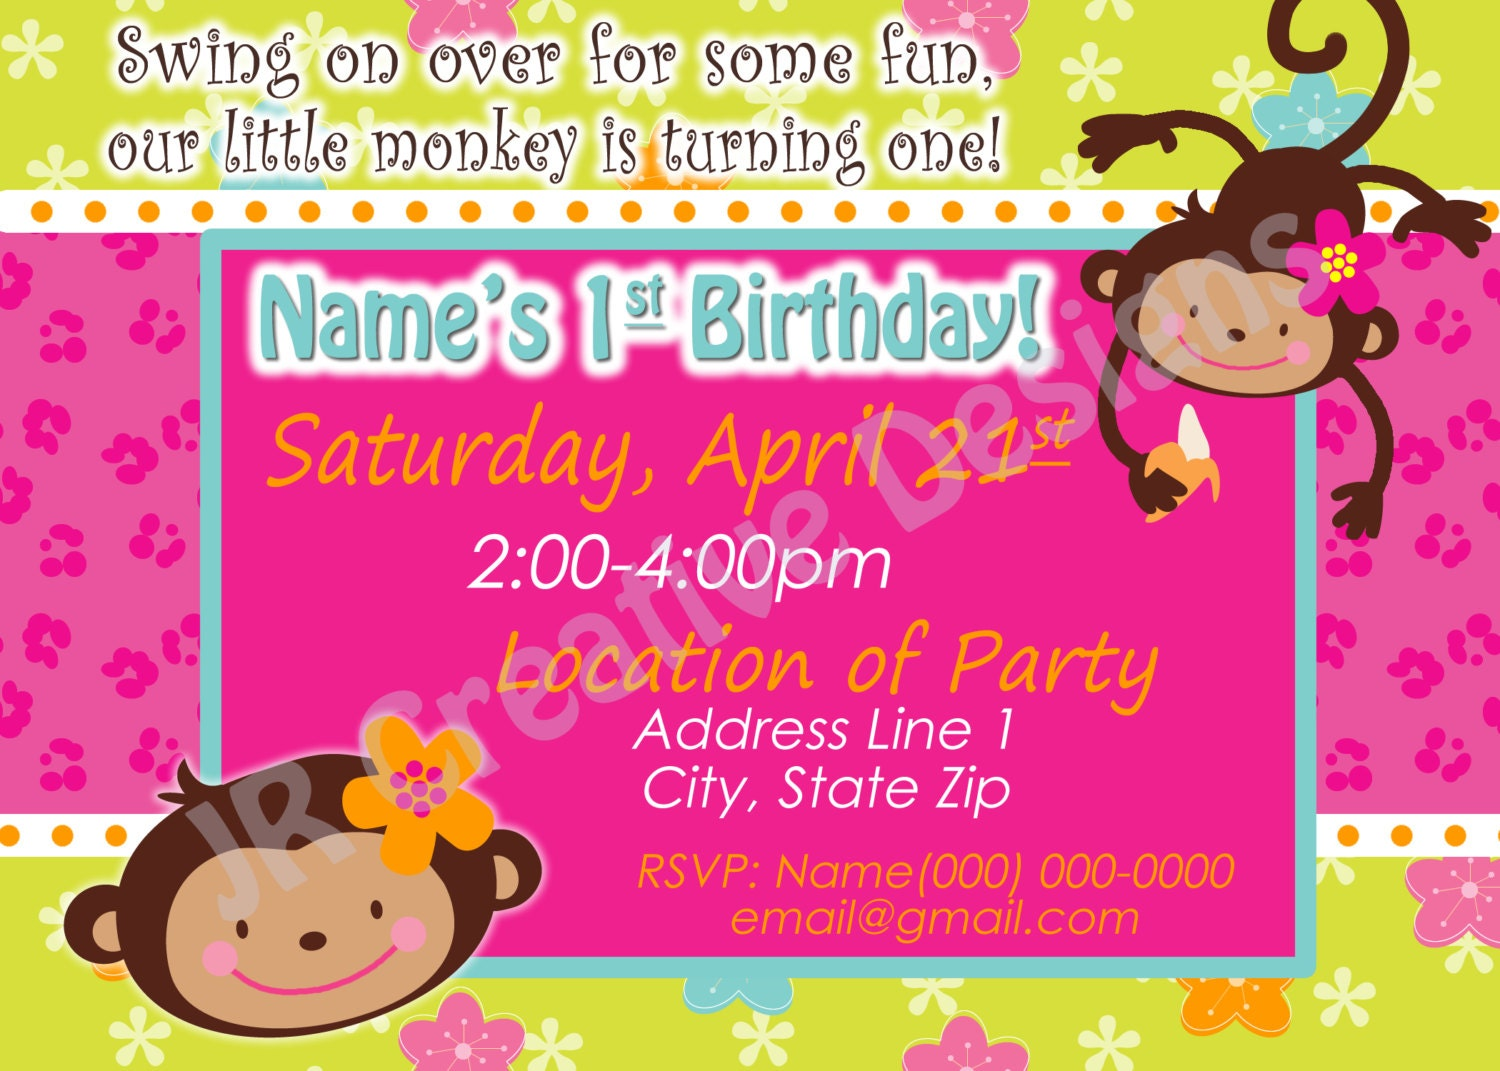 Invitation Card 1 Year Old Birthday | purplemoon.co